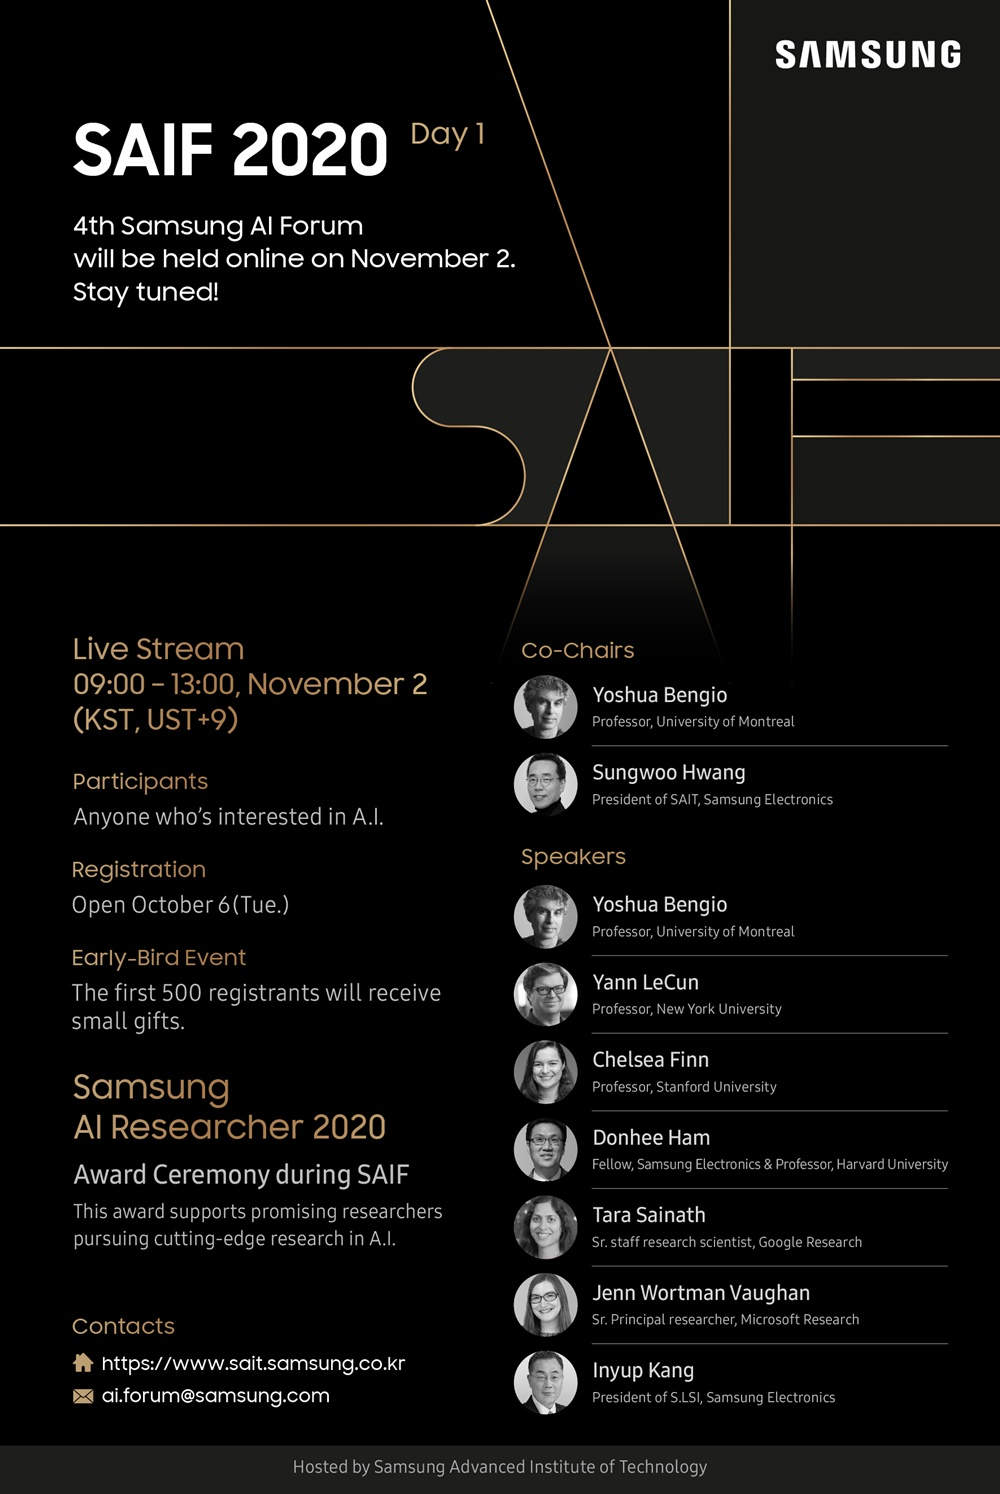 SAMSUNG SAIF 2020 Day1 4th Samsung AI Forum will be hold onilne on November 2. Story tuned